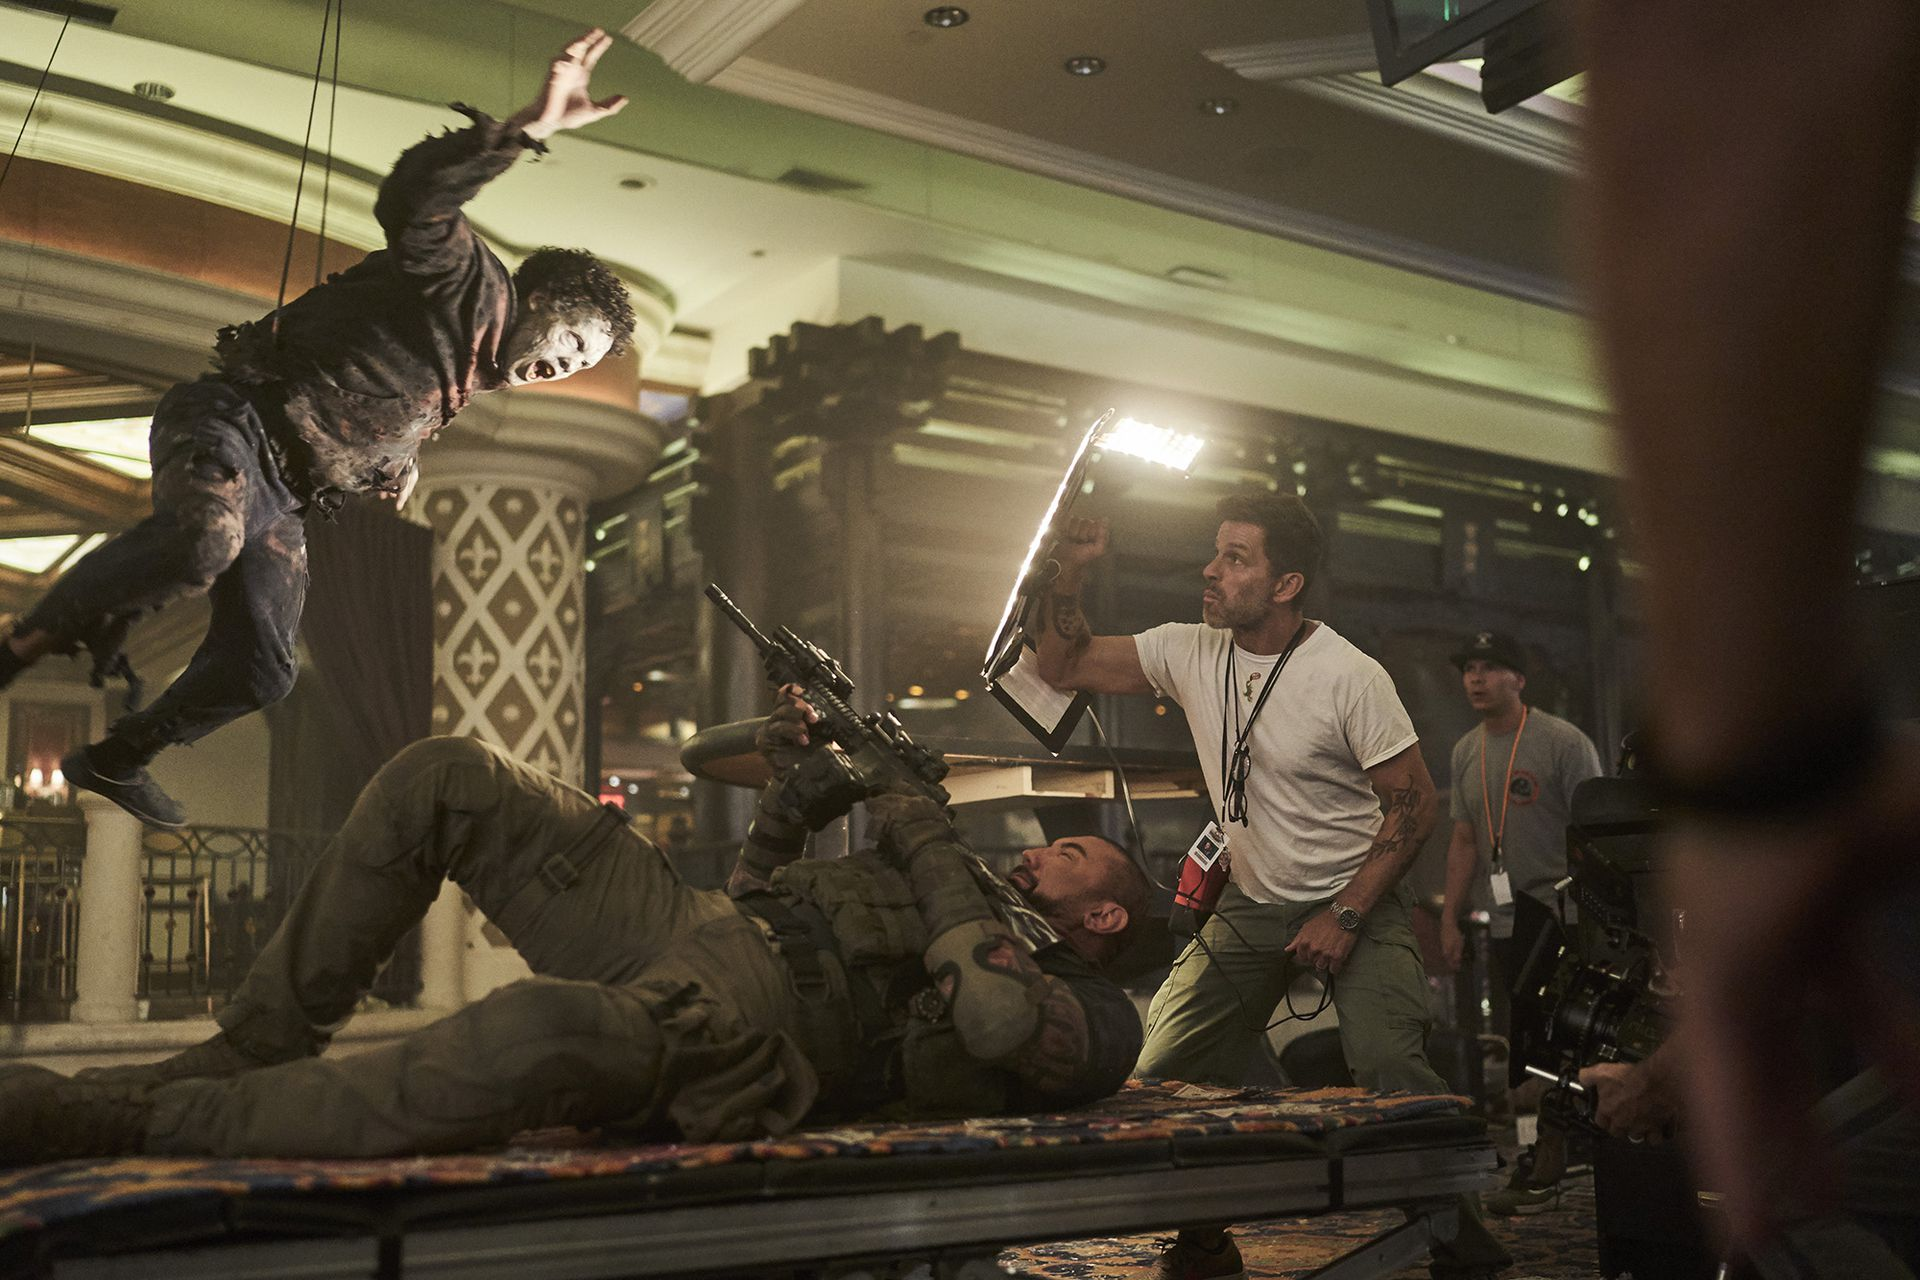 Dave Bautista, filming with Zack Snyder.